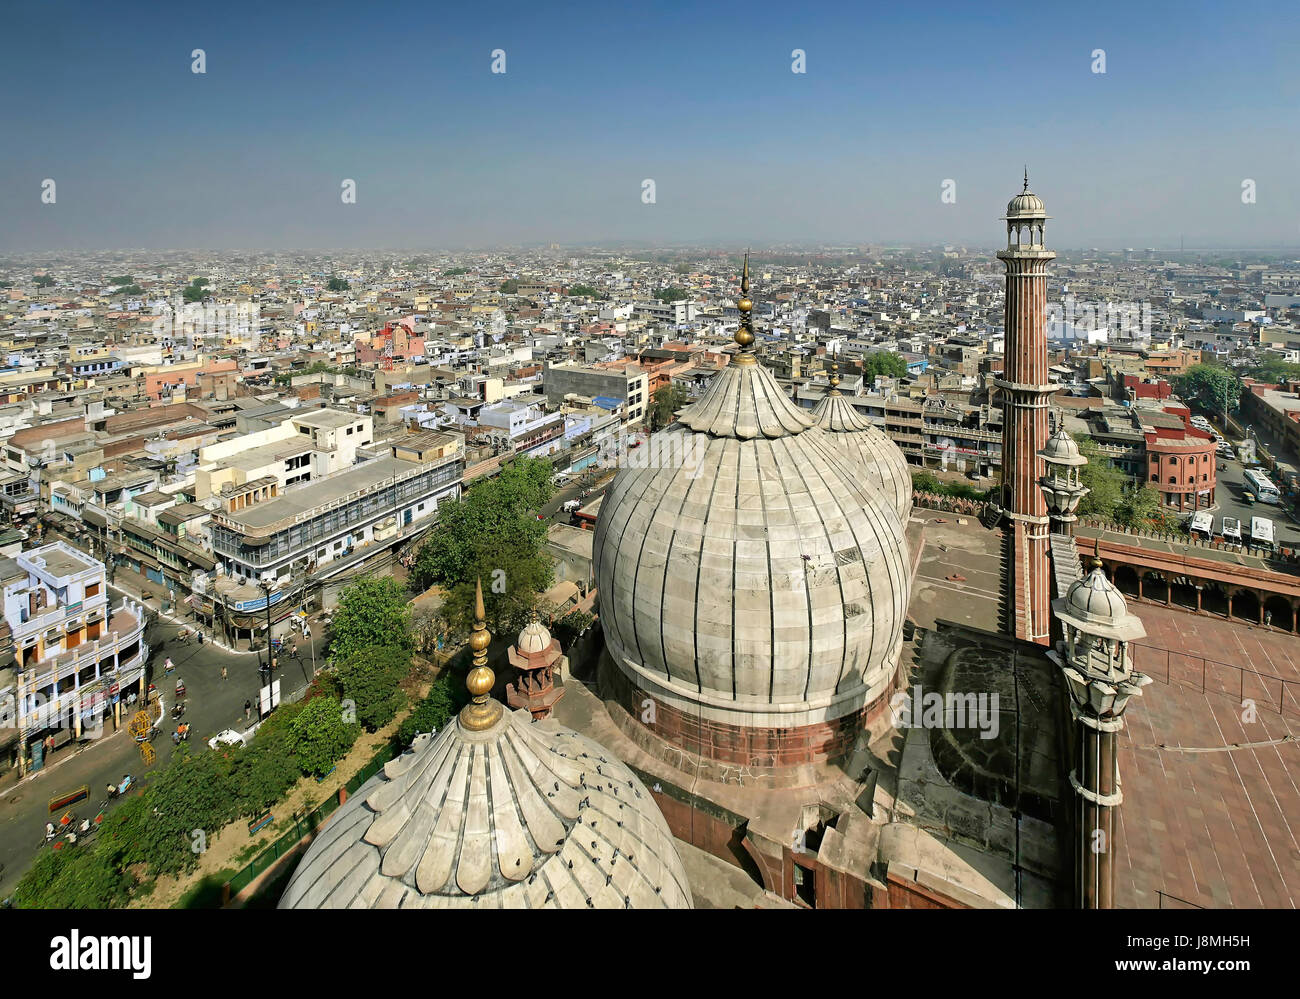 View from a minaret of the Jama Masjid mosque in Delhi, India. - Stock Image